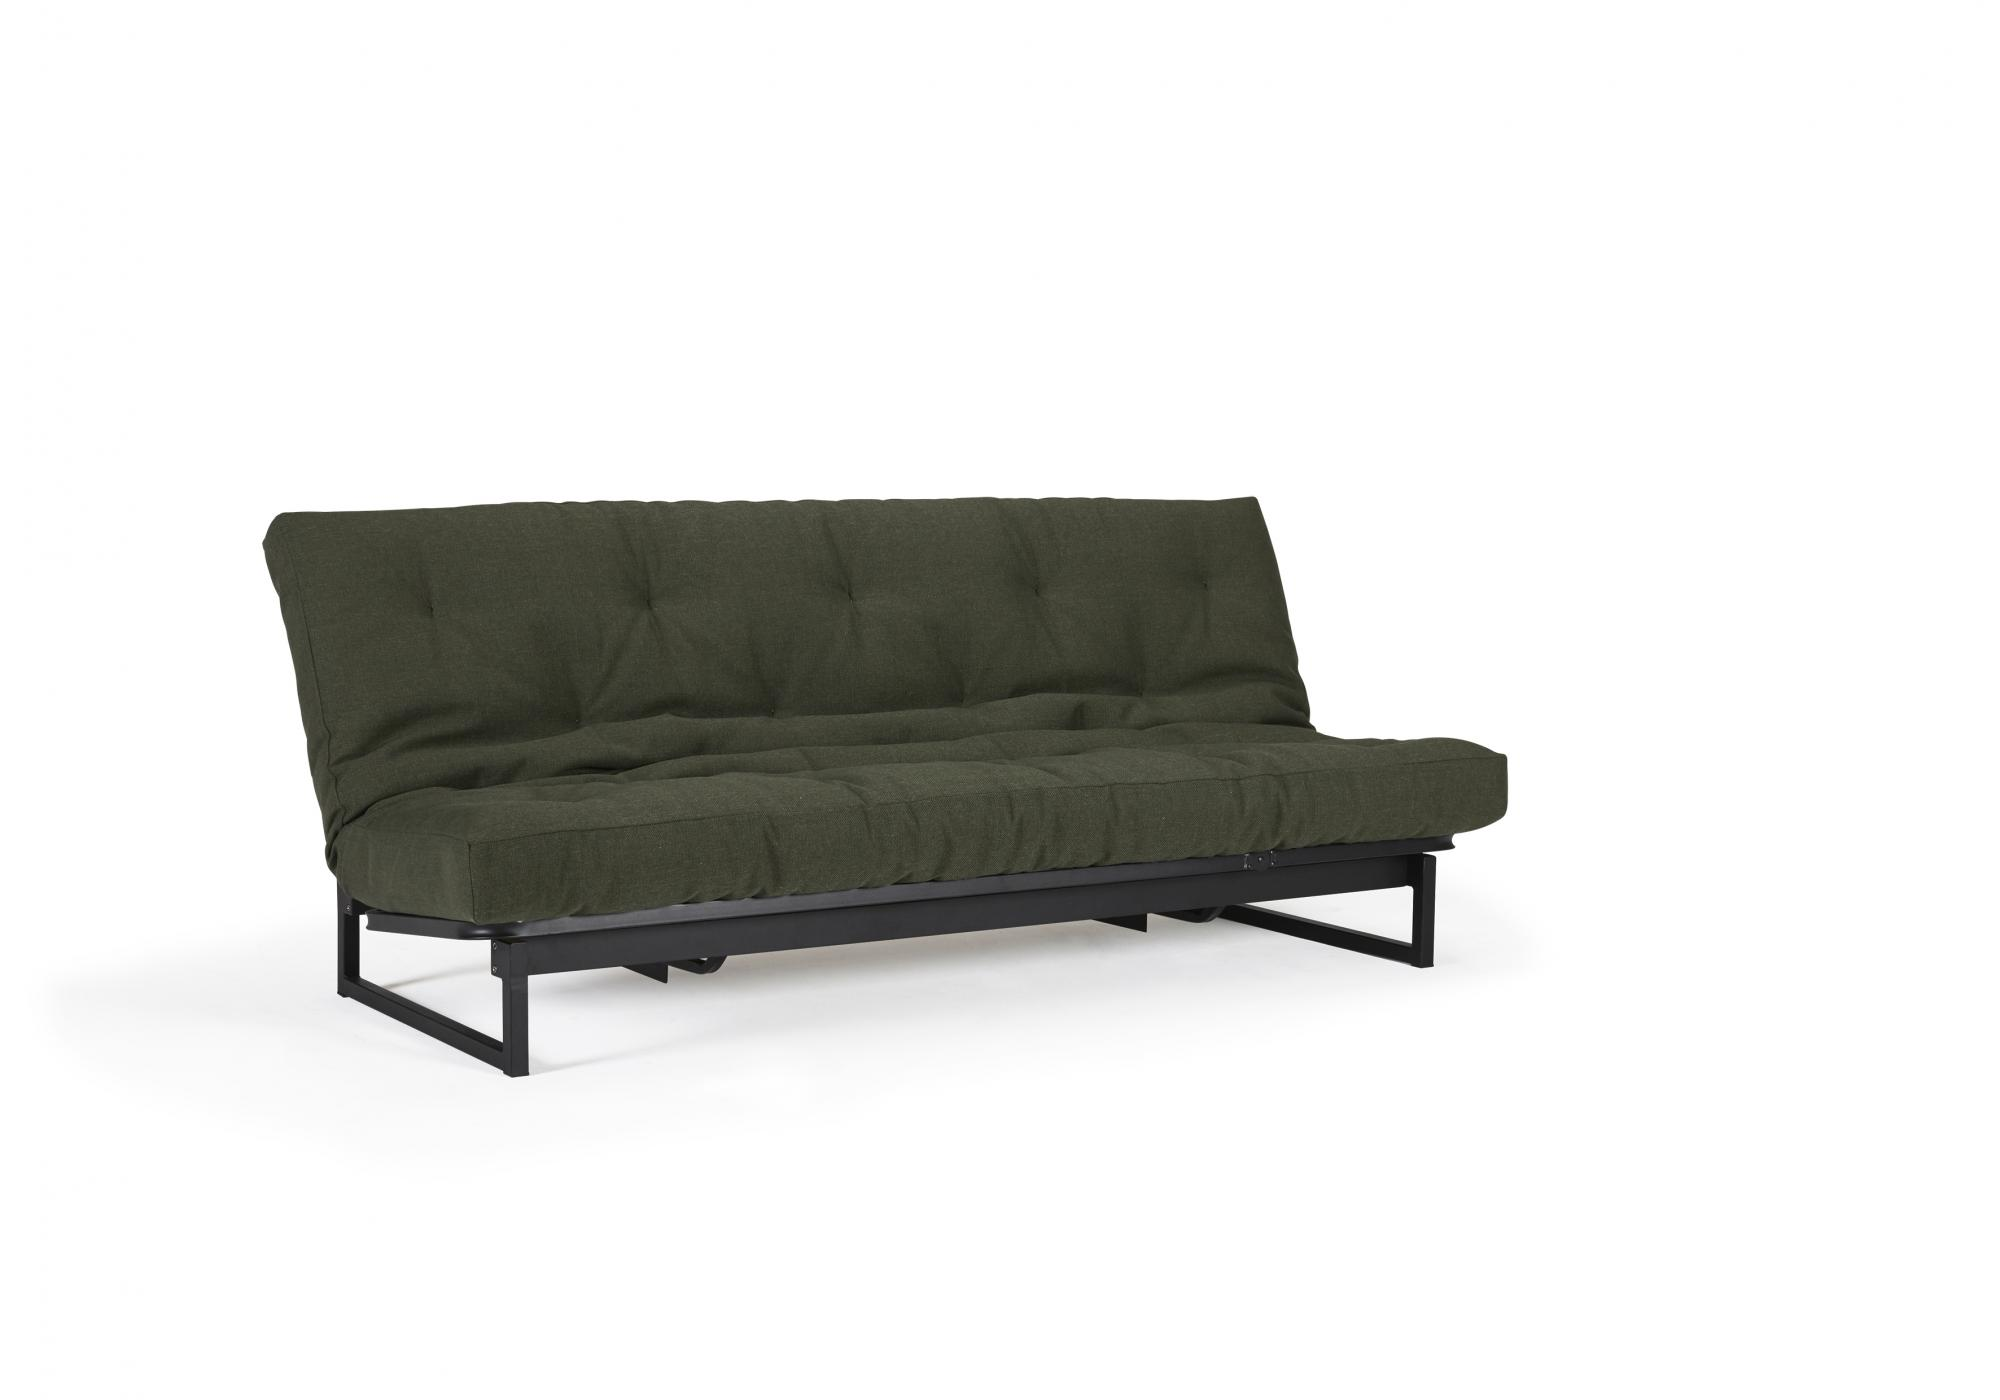 Schlafsofas Dunckerstraße Fraction 120 Multifunctional Sofabed Innovation Sofas